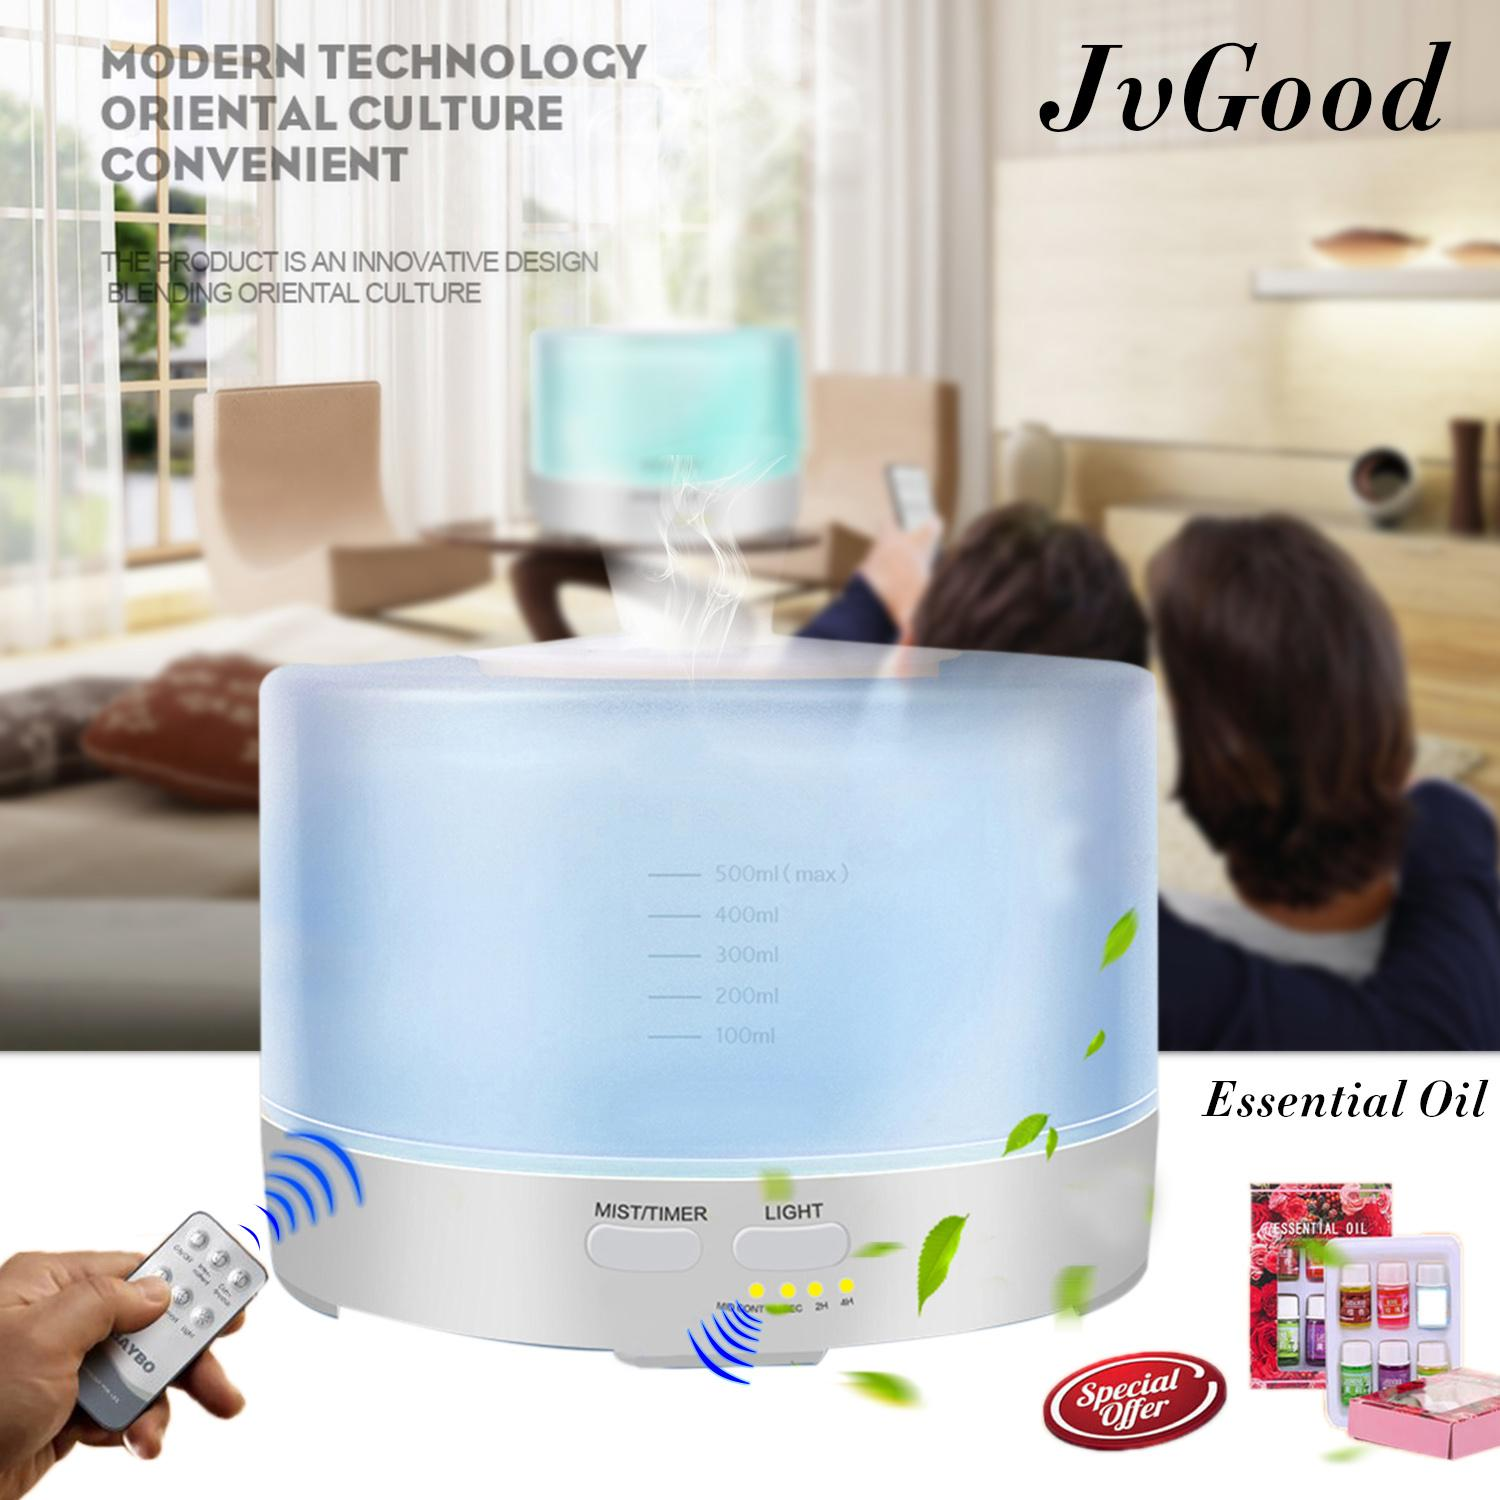 JvGood Air Humidifier Ultrasonic Aroma Diffuser Cool Mist Humidifier Essential Oil Diffuser Aromatherapy Diffuser Wooden Air